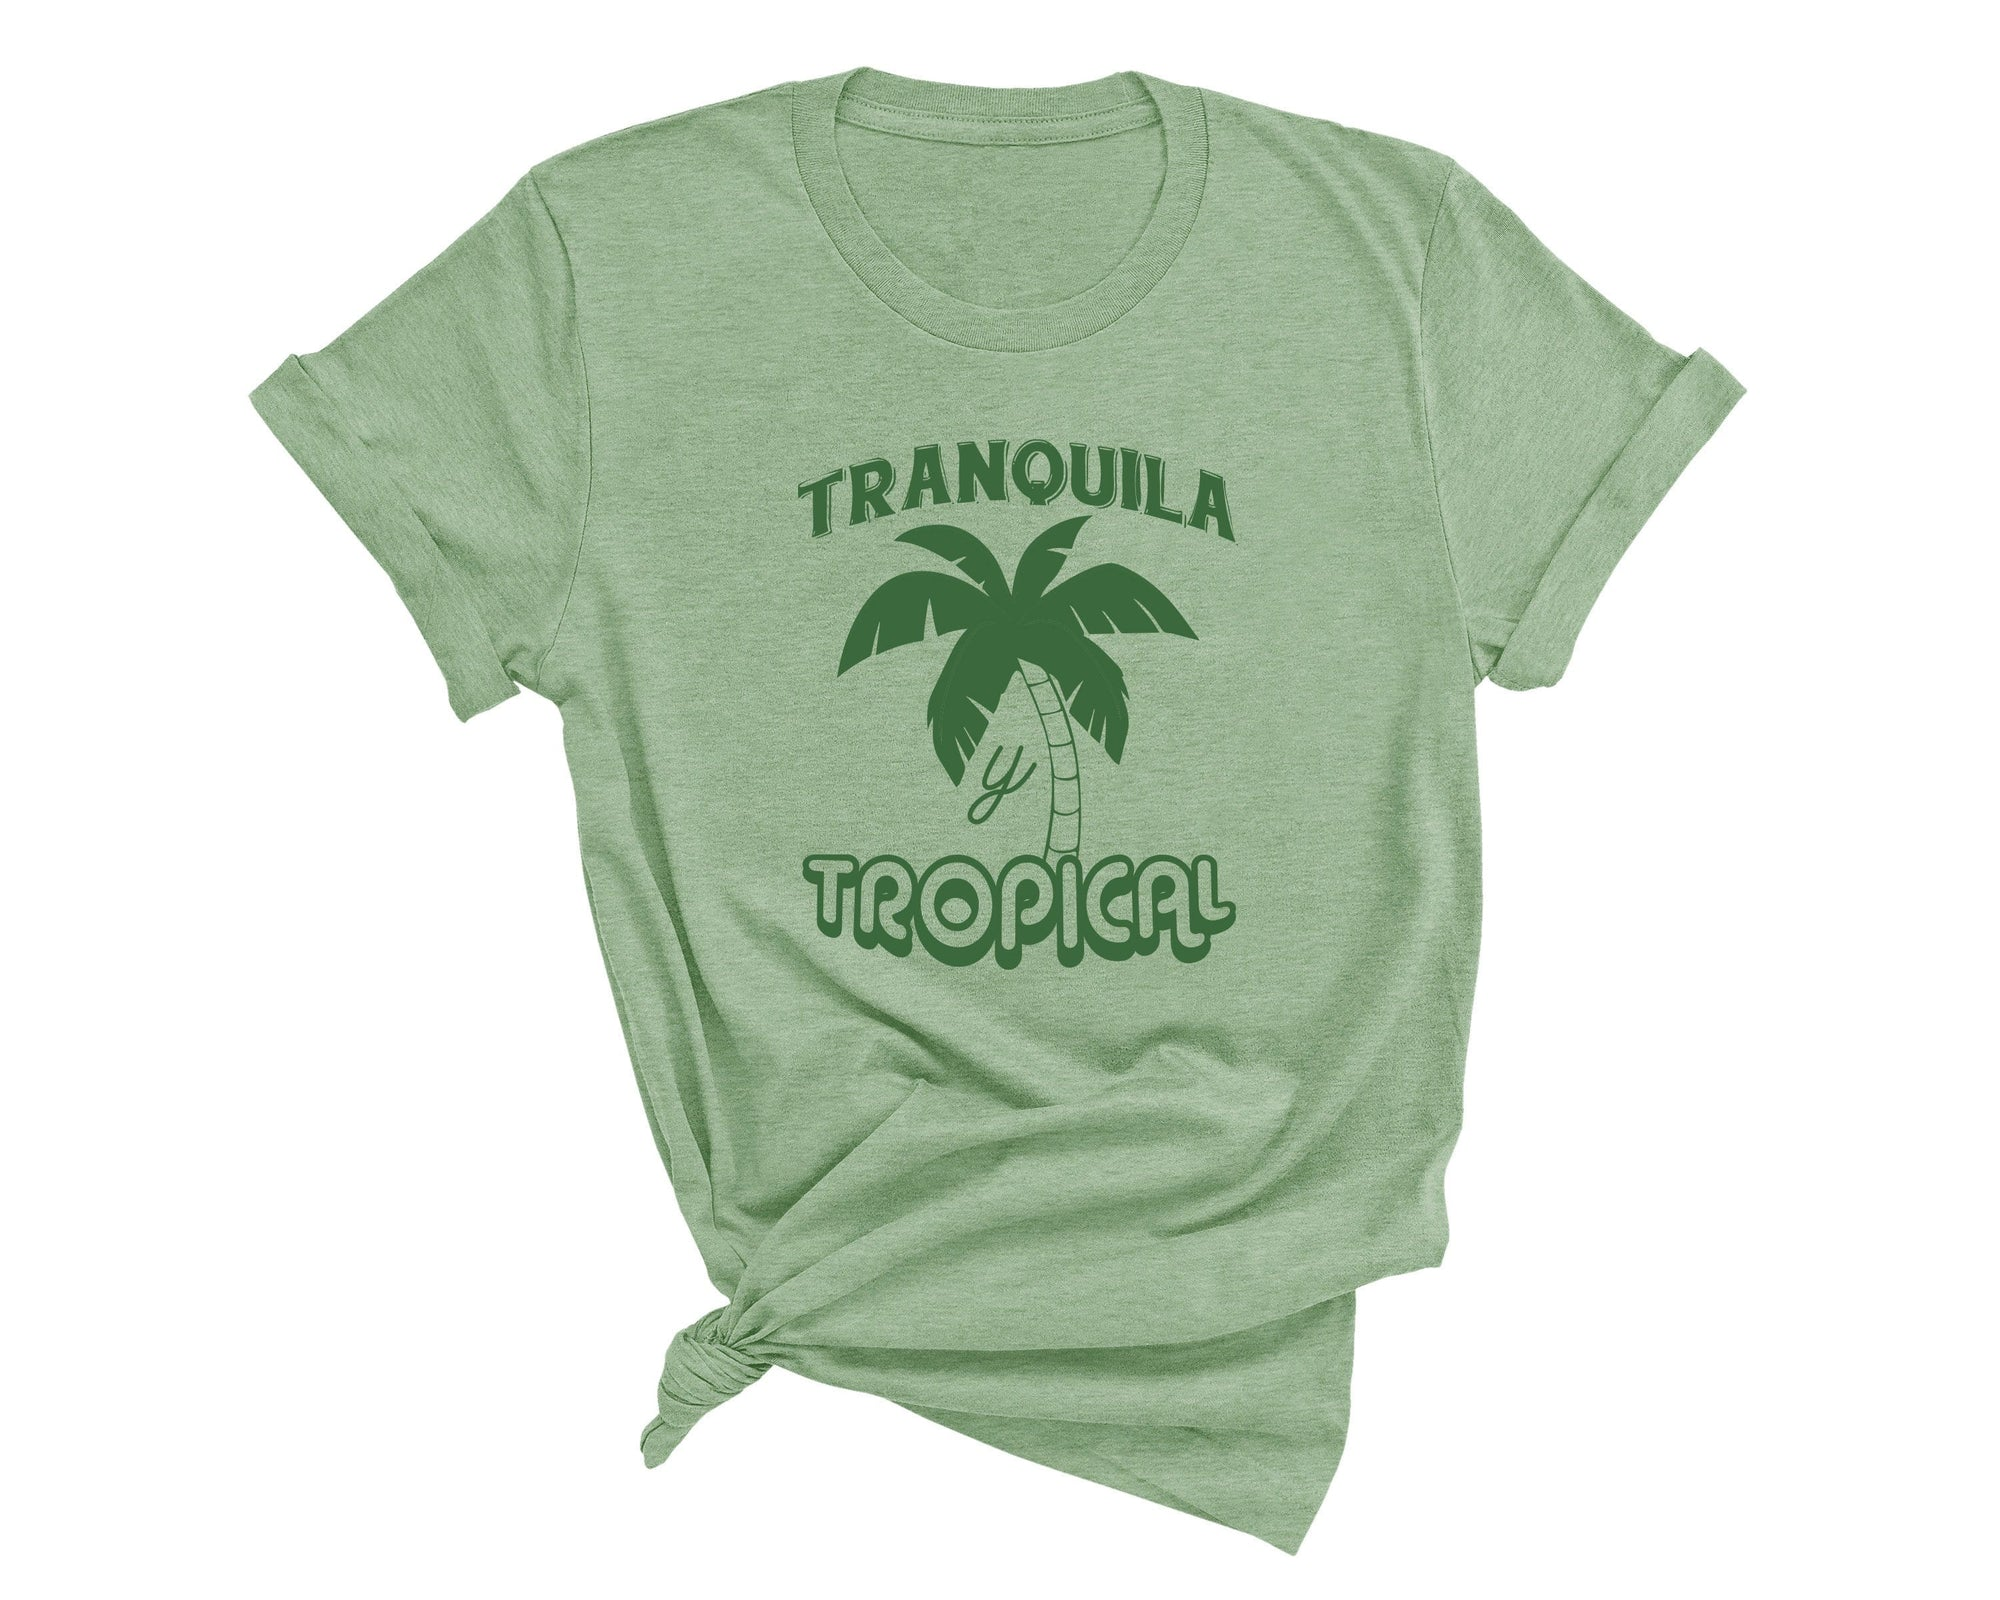 Tranquila-y-Tropical-Tee-Women.jpg